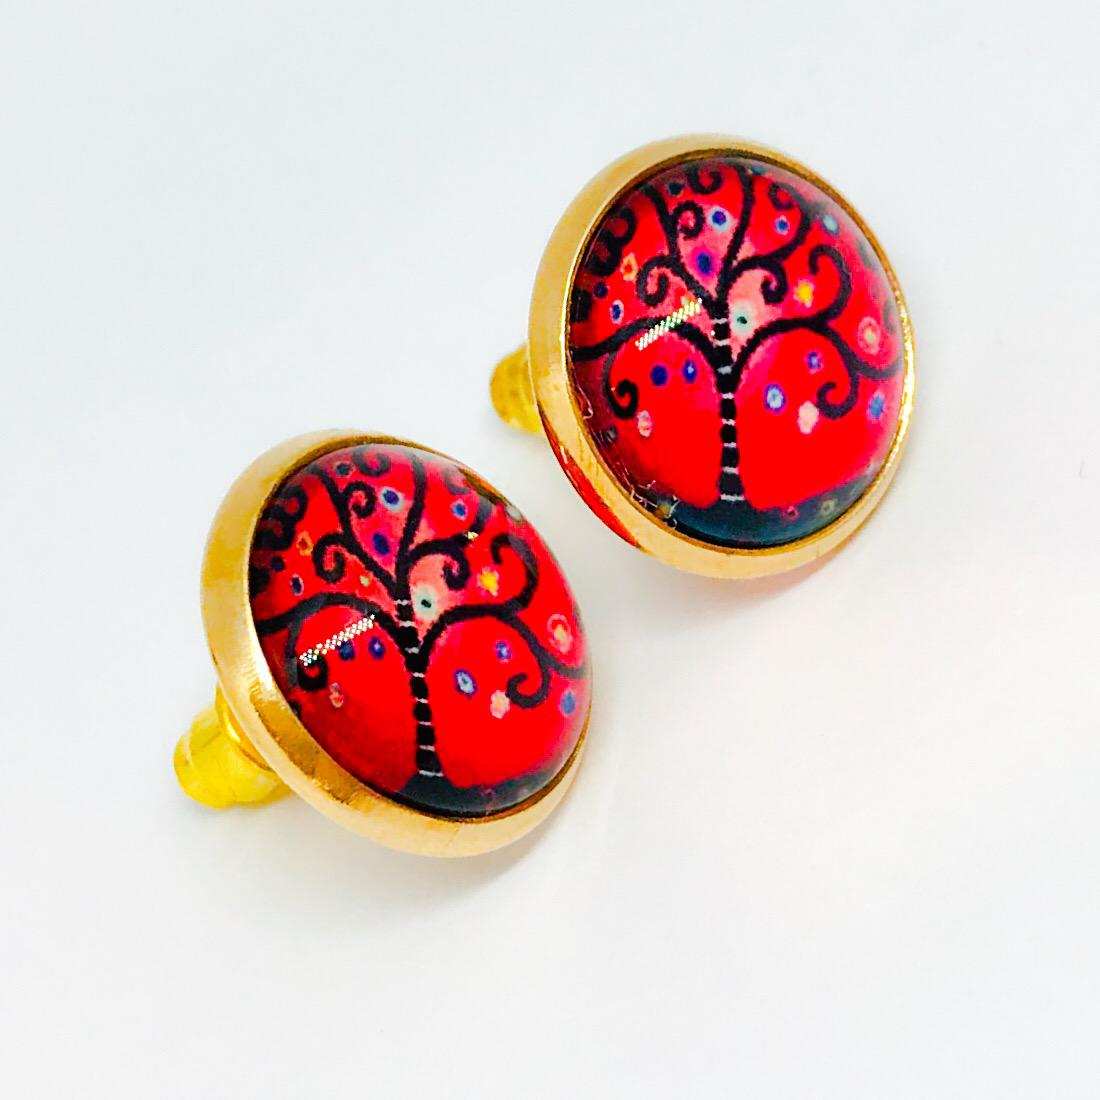 Gold plated cabochon earrings